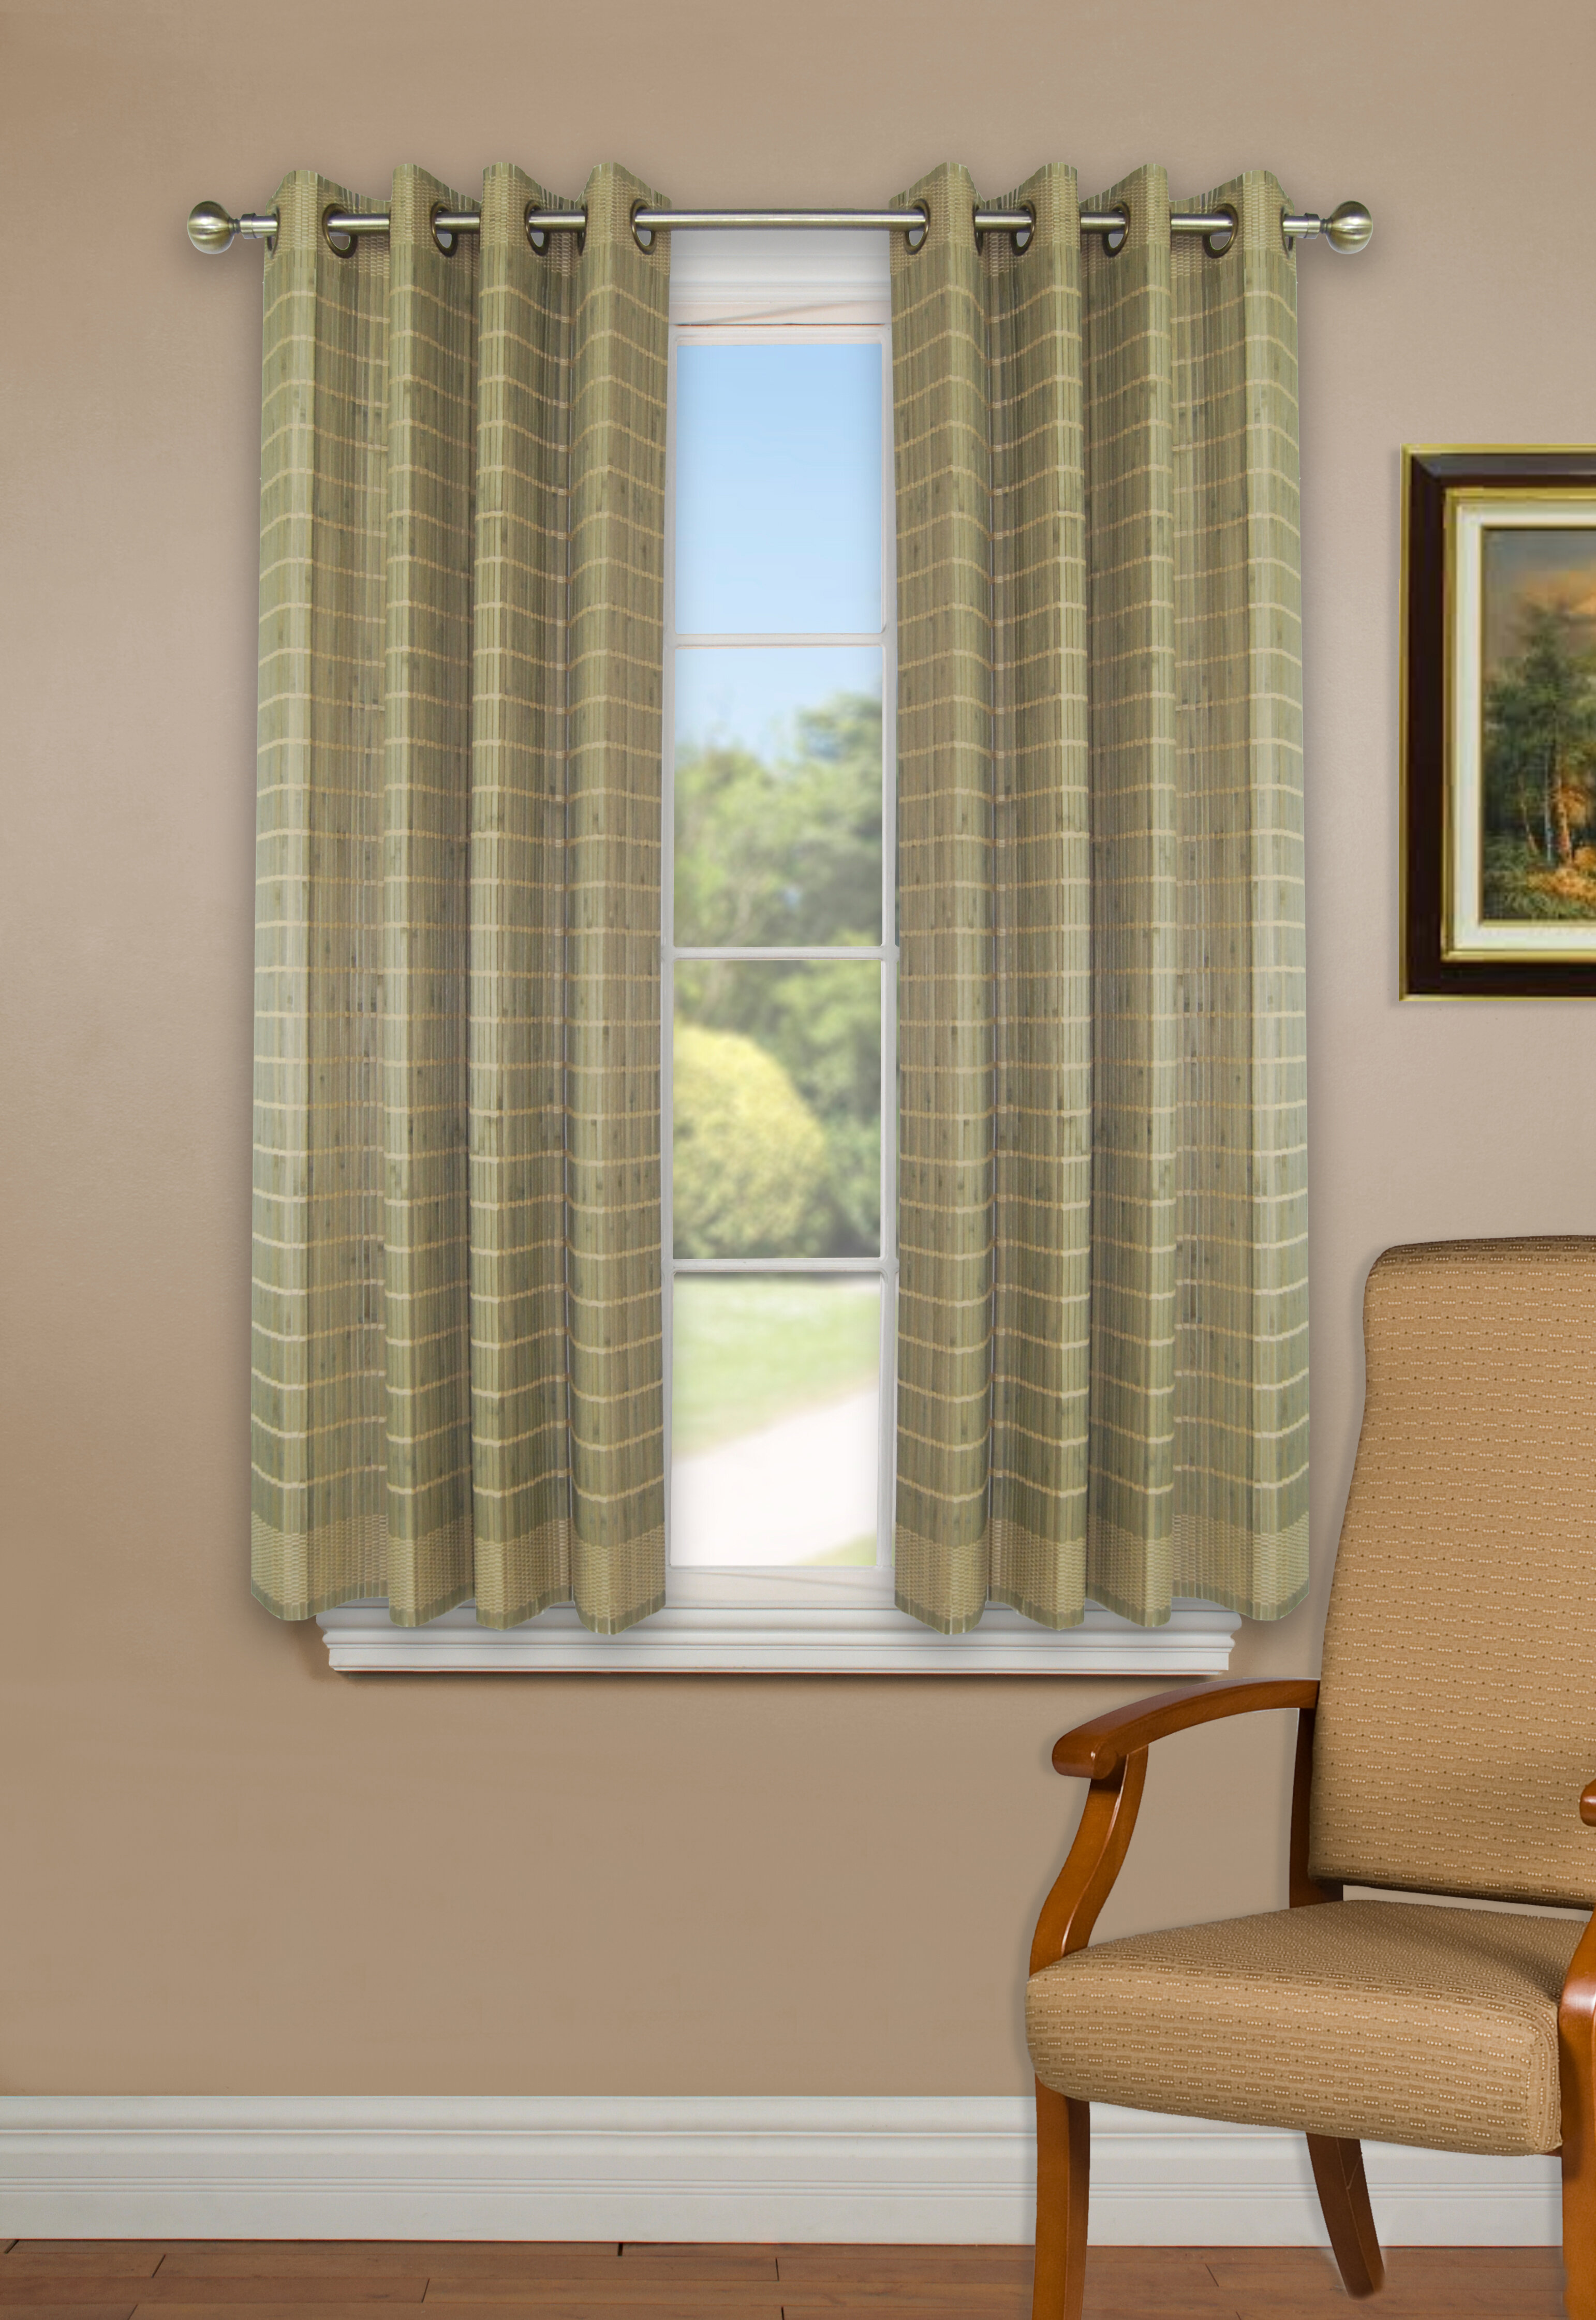 cape com walmart cod natural drapes abfb roman shades radiance ip bamboo woven